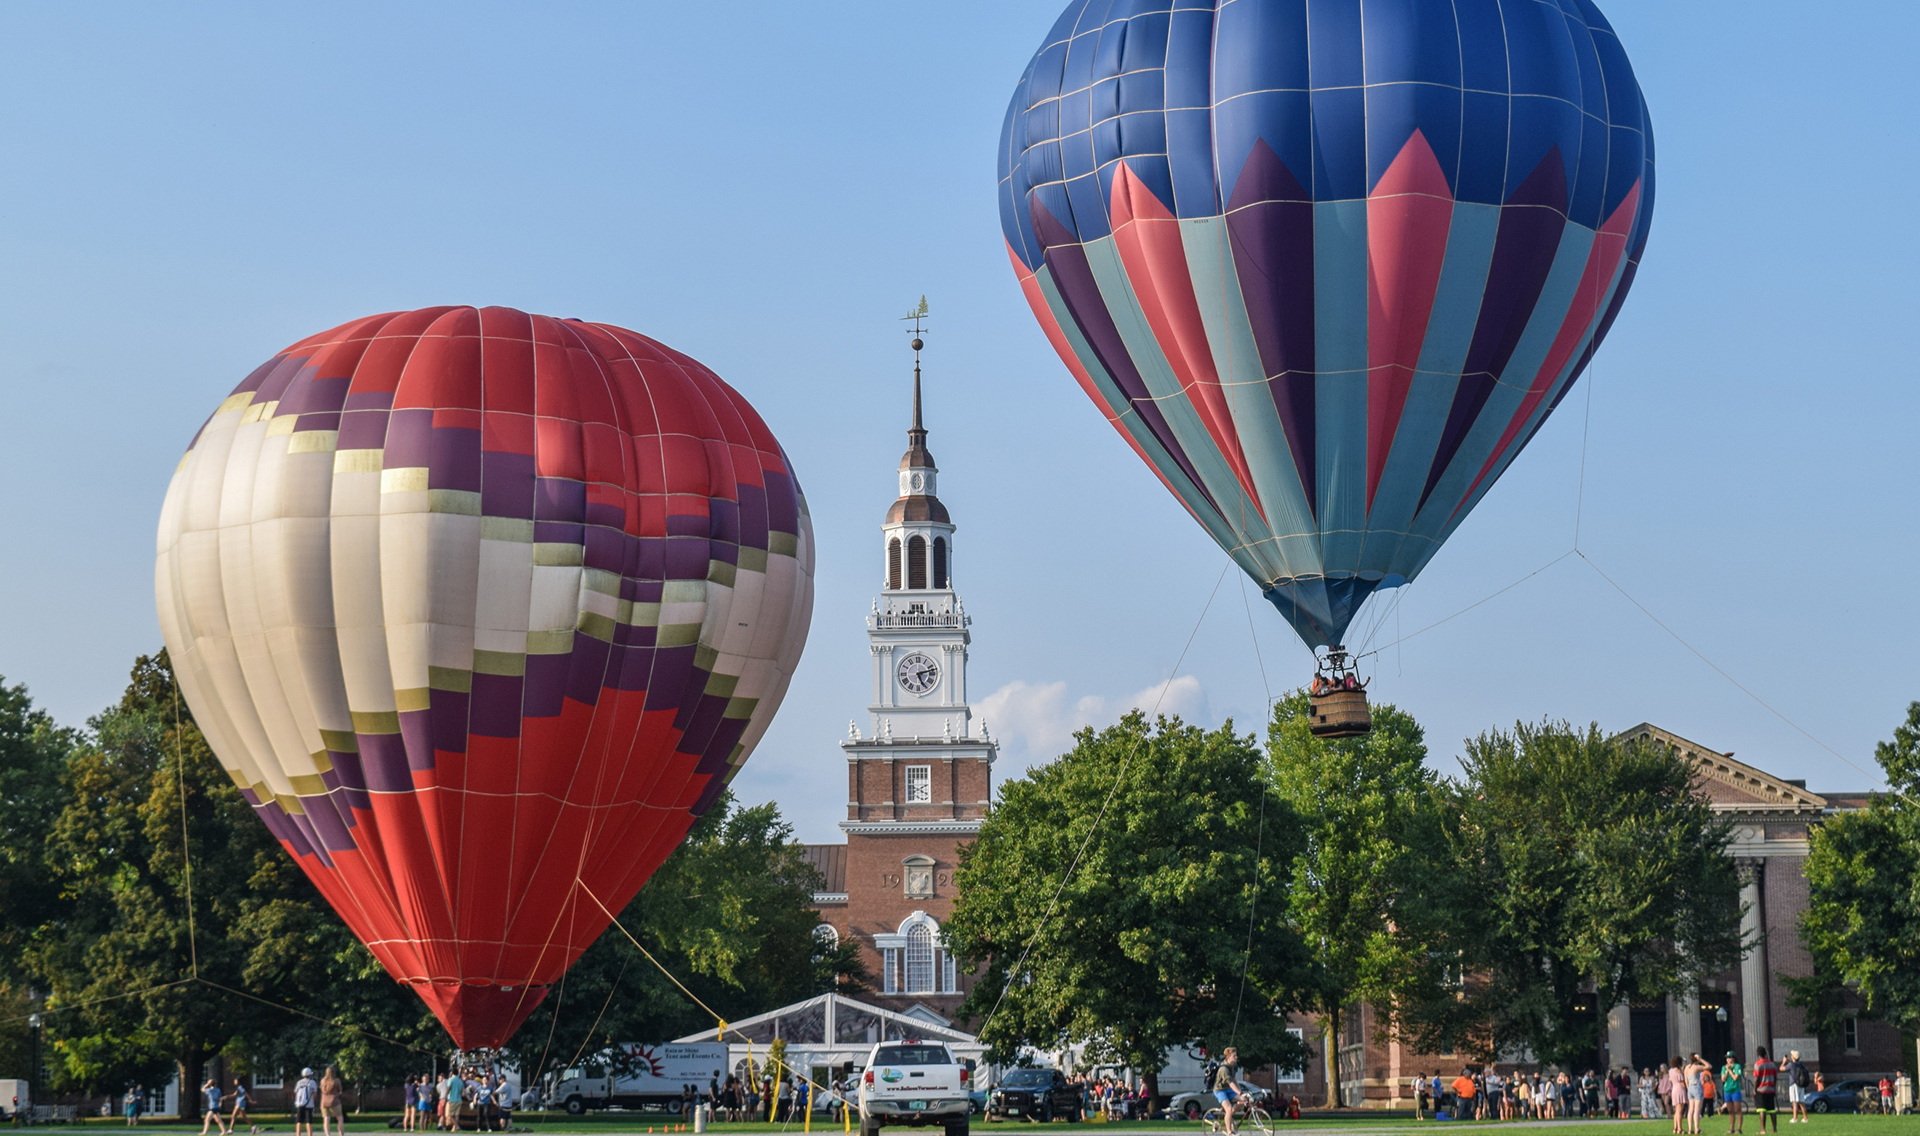 Photo of hot air balloons in front of Baker Library